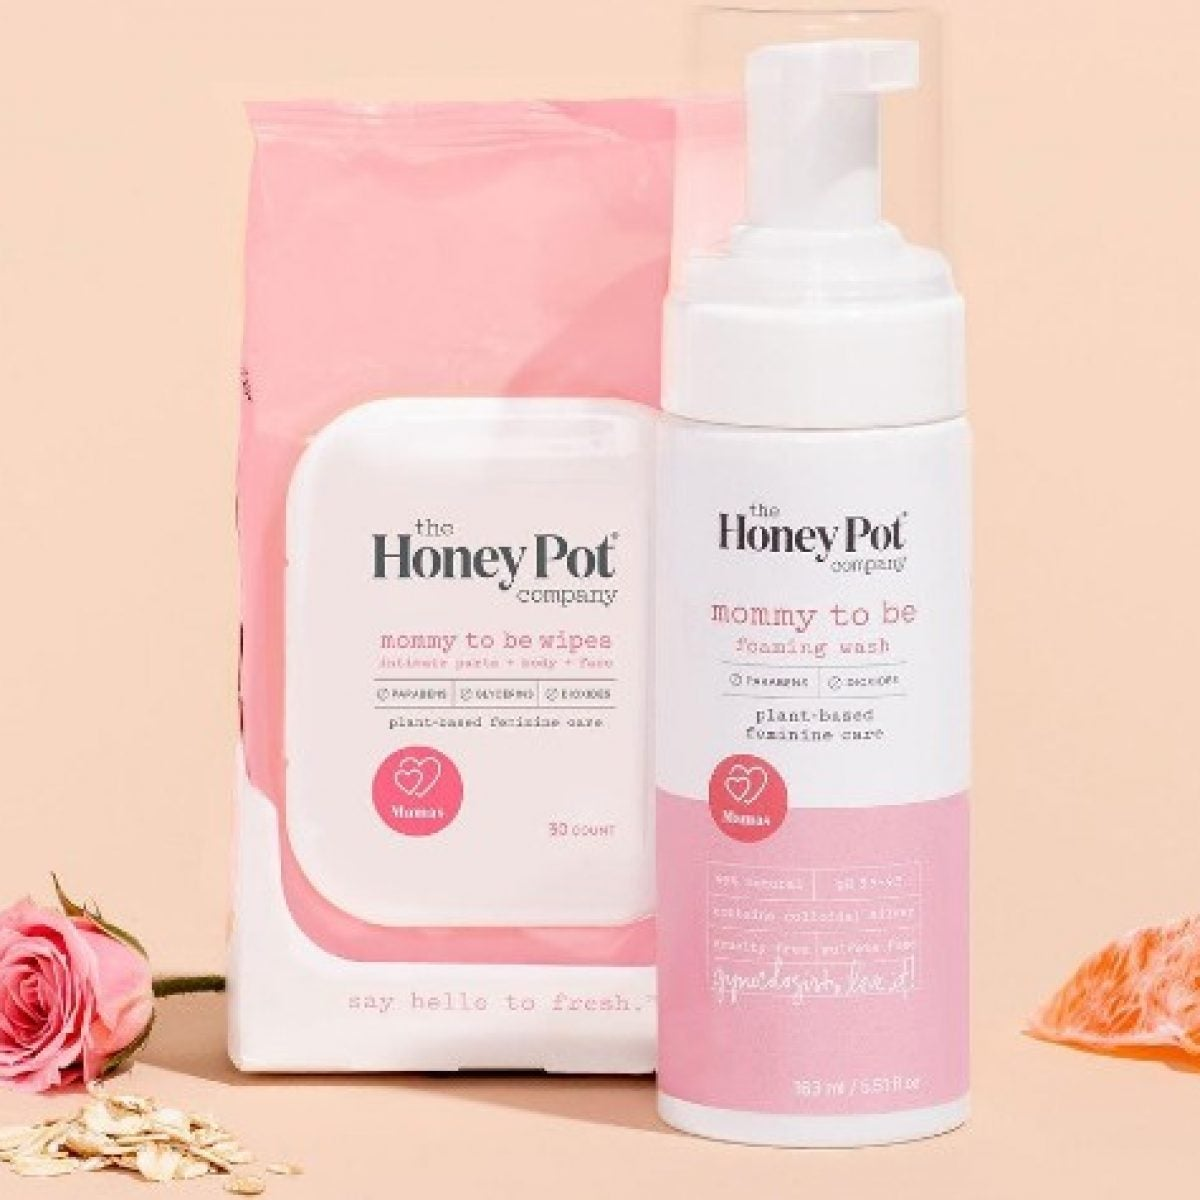 Target Responds To The Honey Pot Ad Backlash